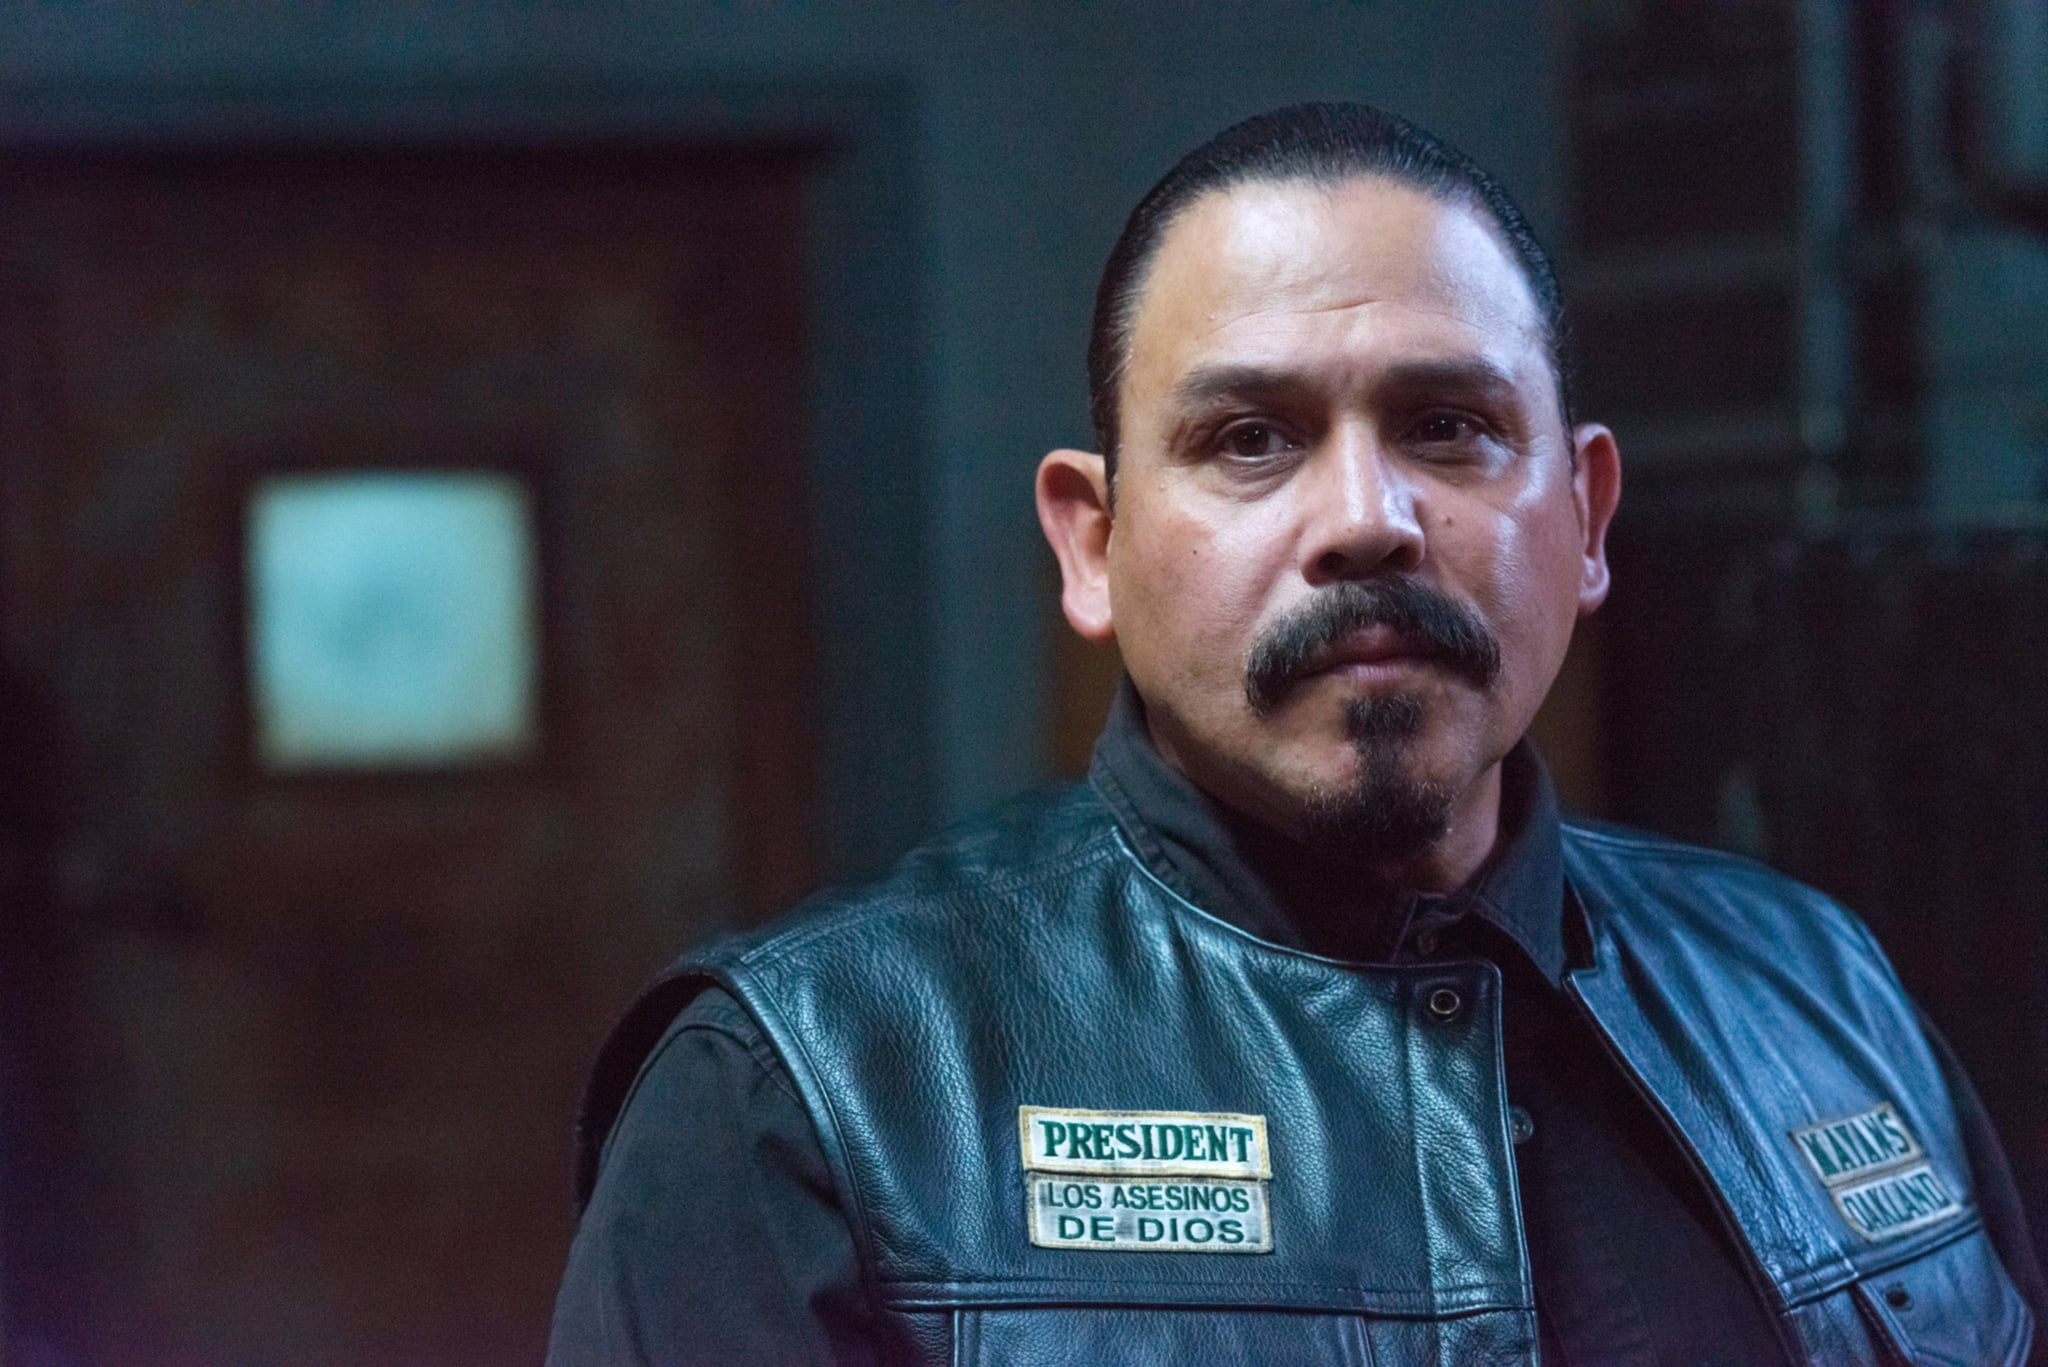 Sons of anarchy 6x08 online dating